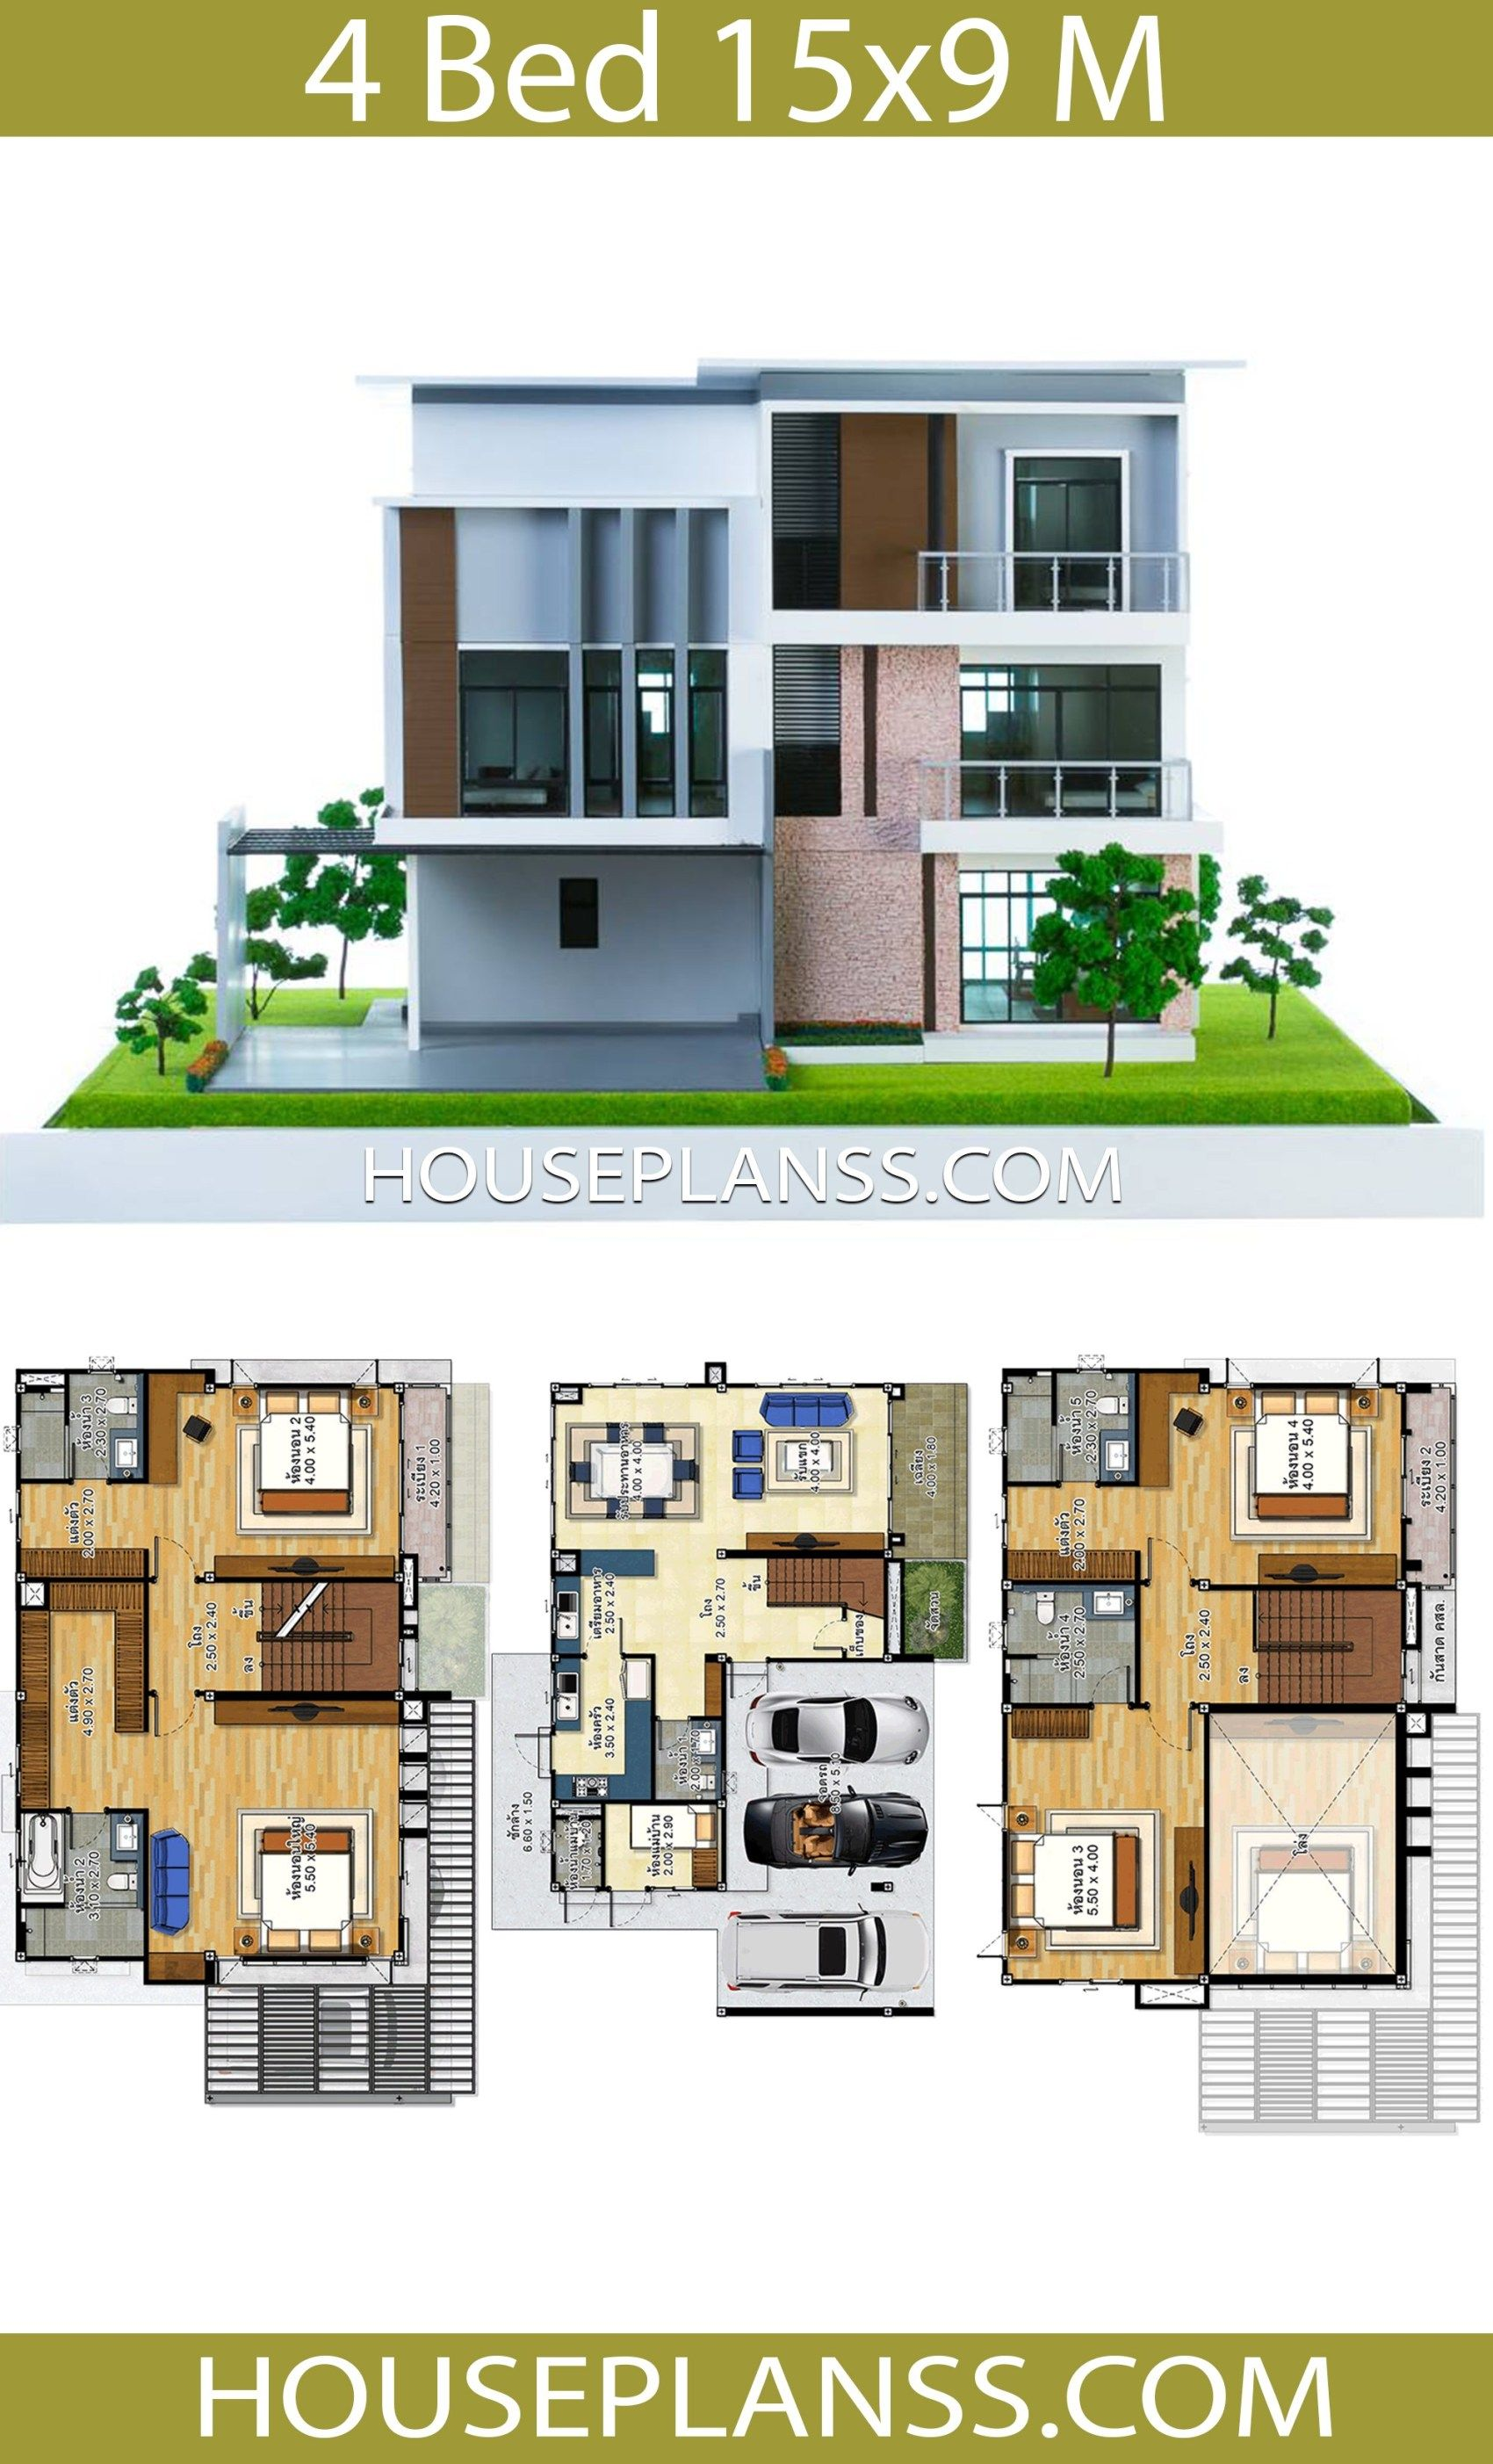 House Plans Idea 15x9 With 4 Bedrooms House Plans S House Construction Plan House Plans My House Plans